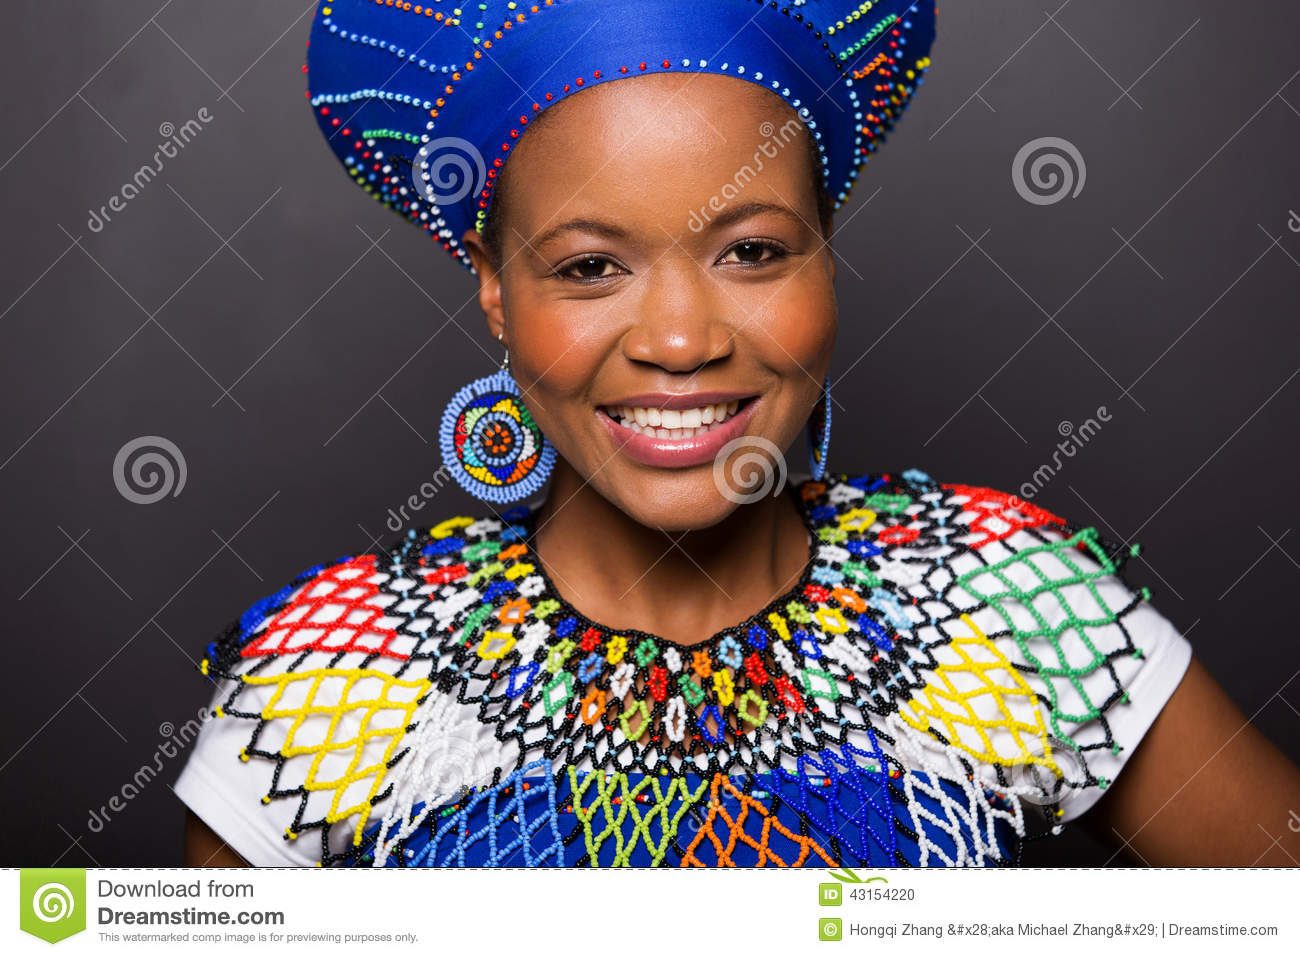 Fille africaine de zoulou Photo stock